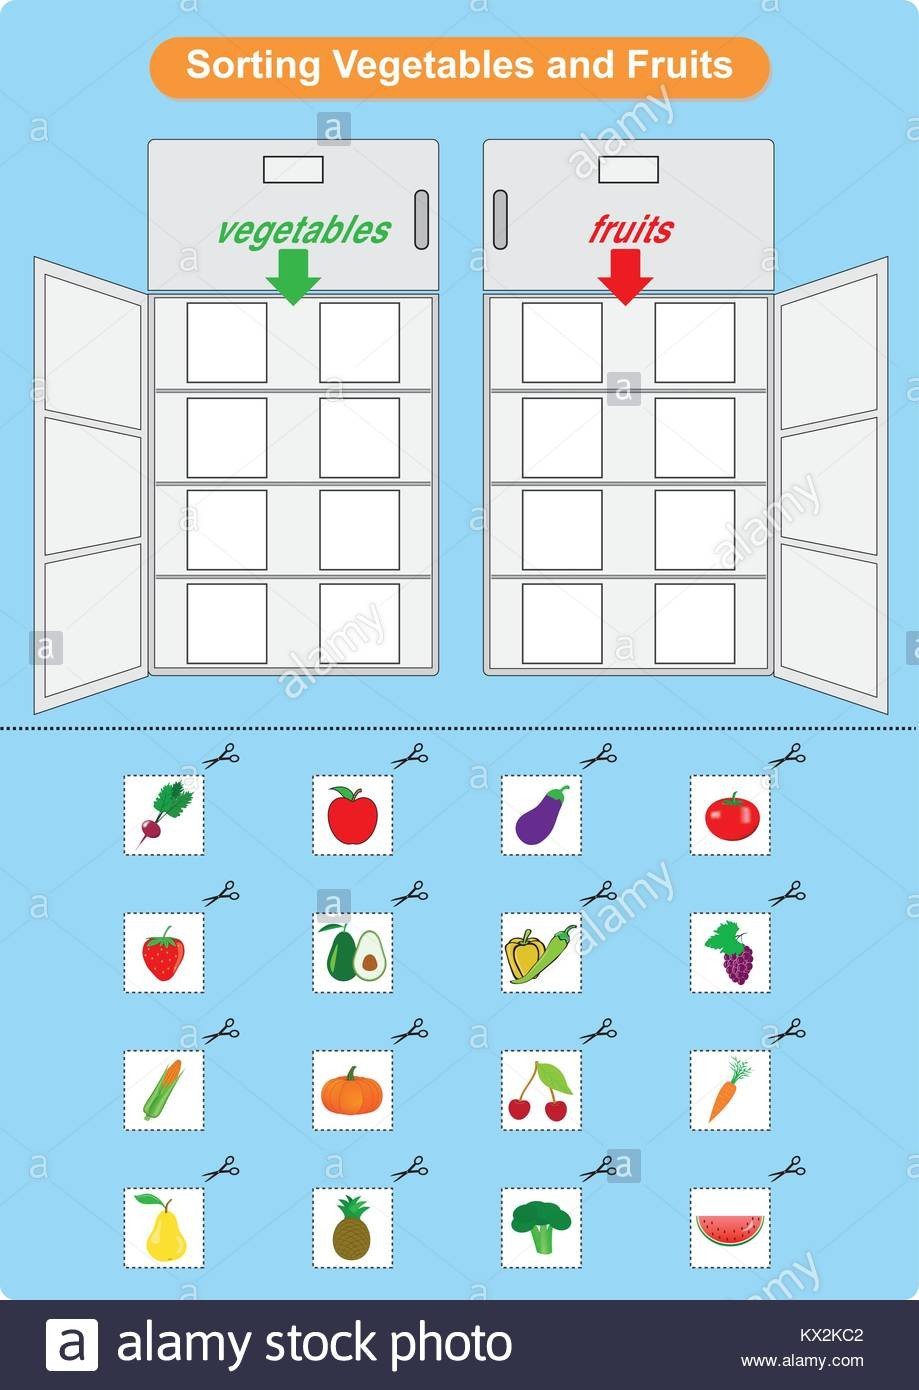 Fruits and Vegetables sorting Worksheet sorting Fruits and Ve Ables In Refrigerator Worksheet for